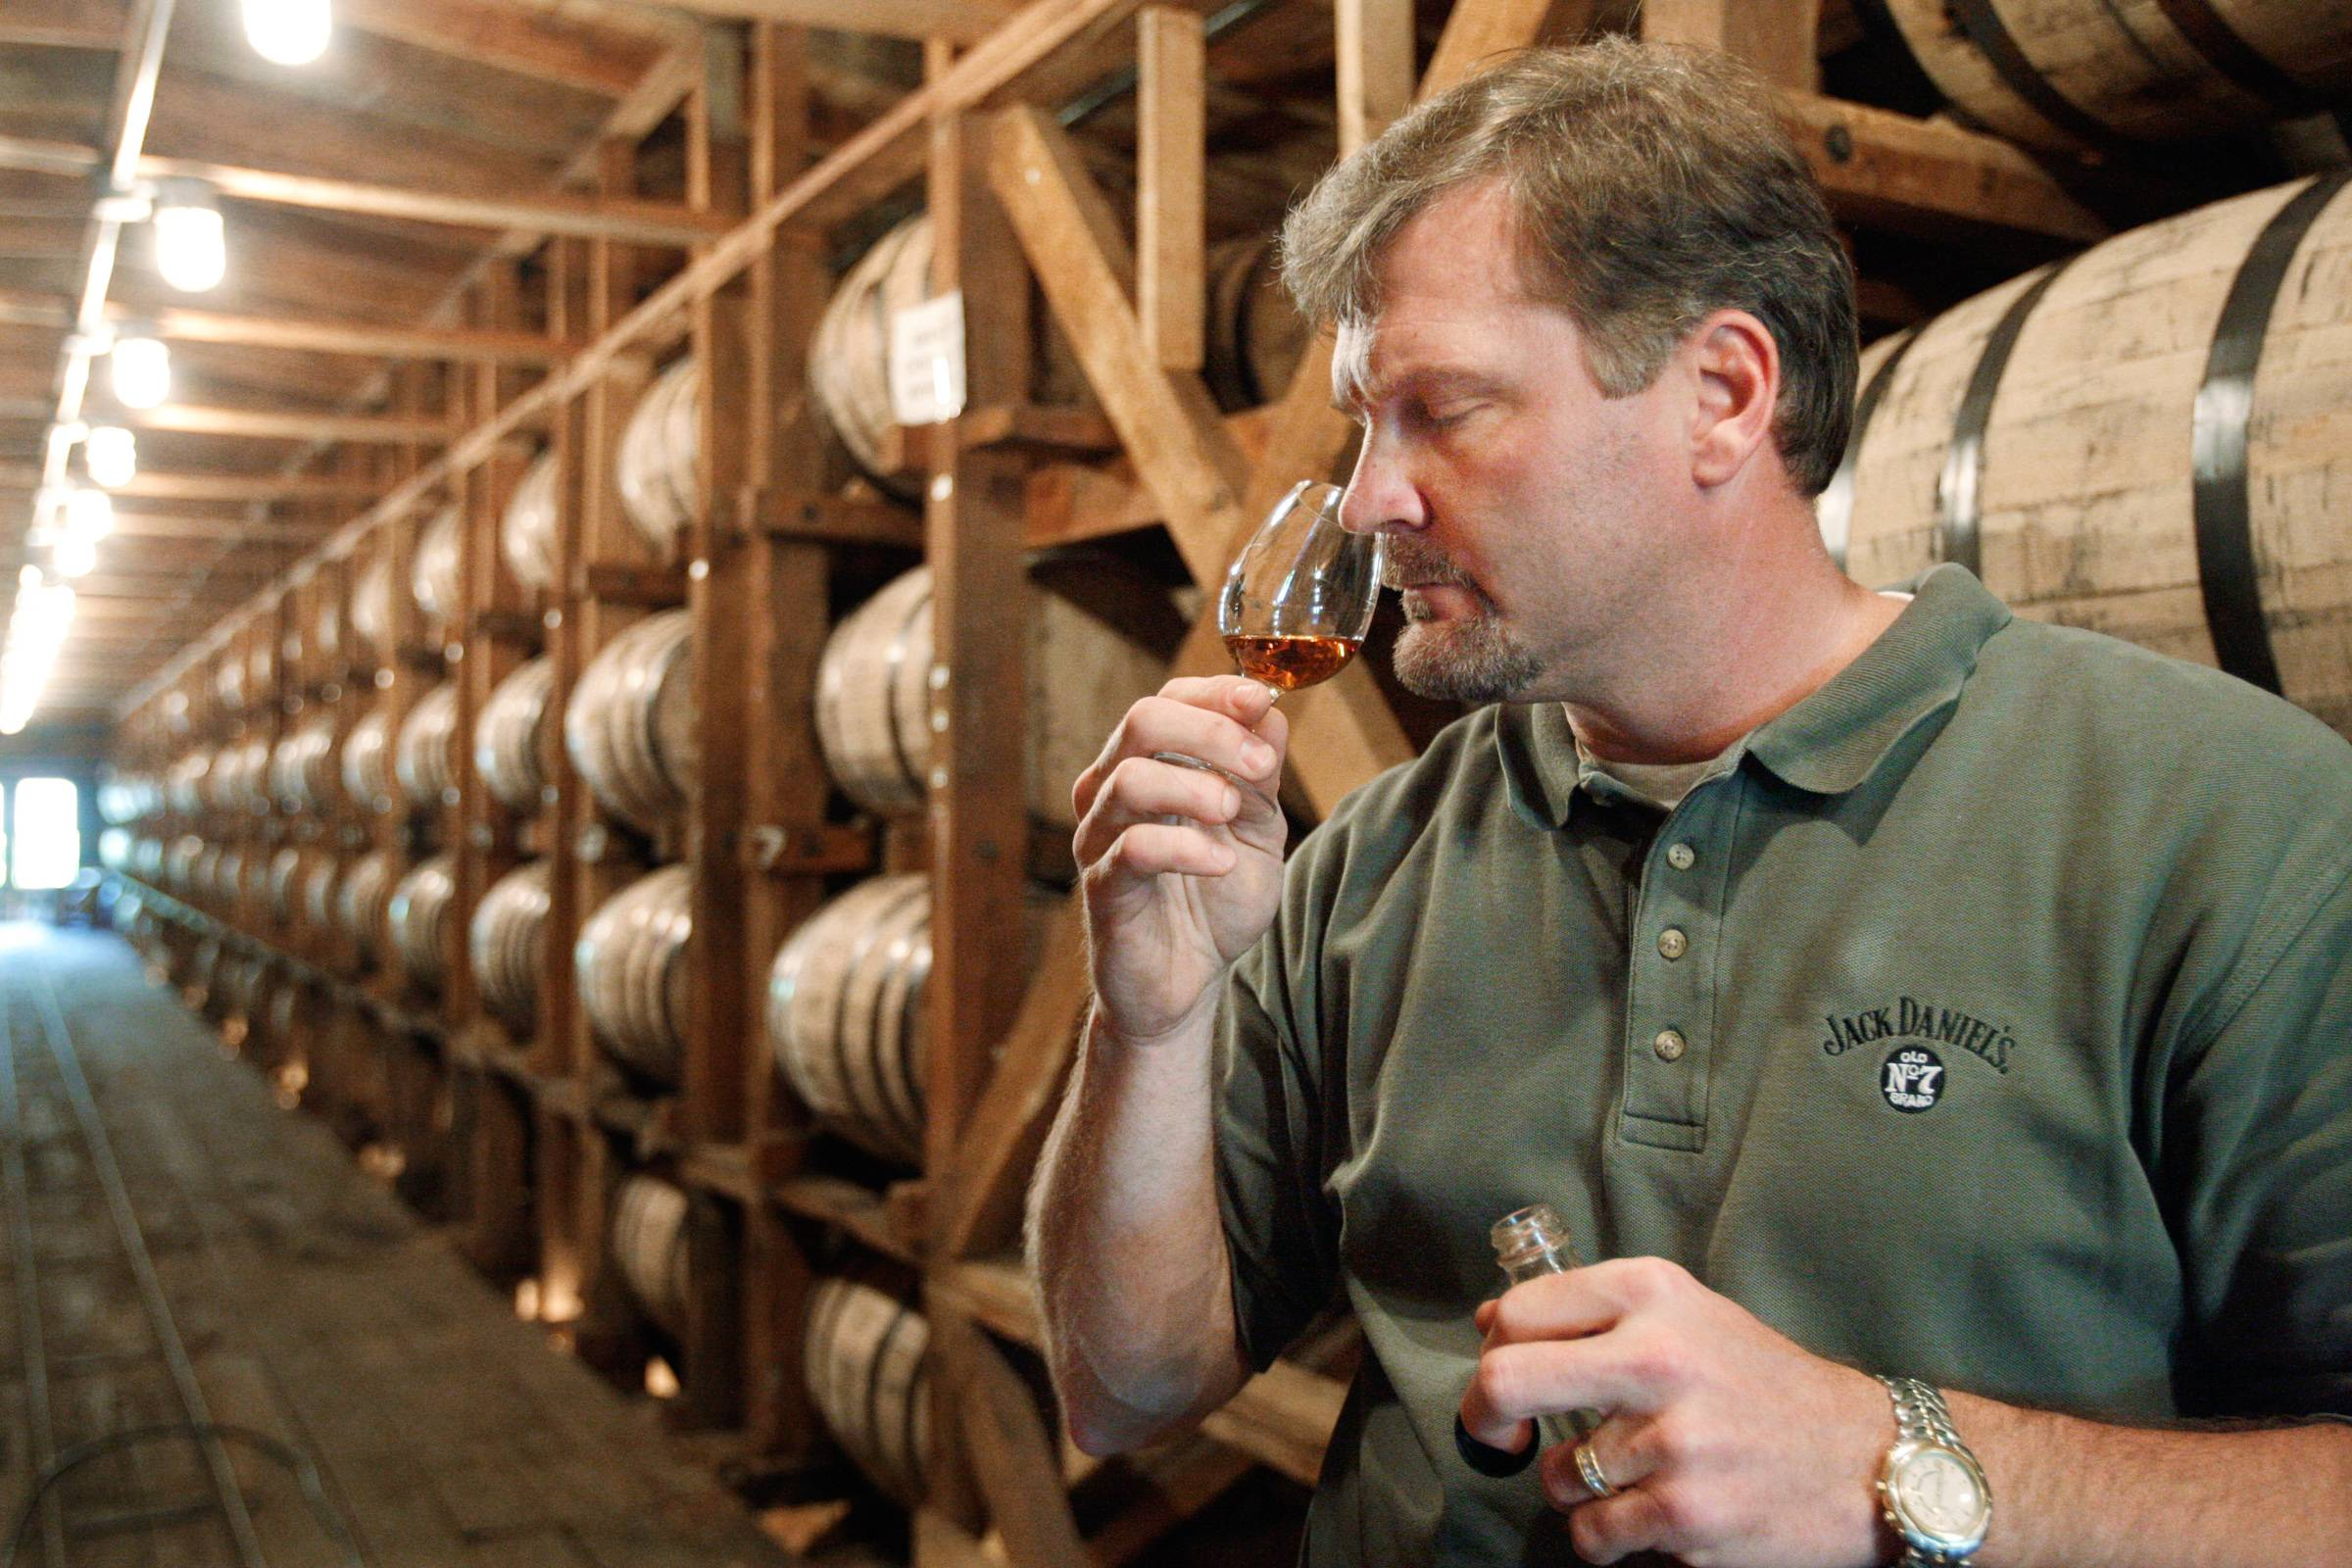 Jeff Arnett, the master distiller at the Jack Daniel Distillery in Lynchburg, Tenn., tests the aroma of whiskey at the distillery.